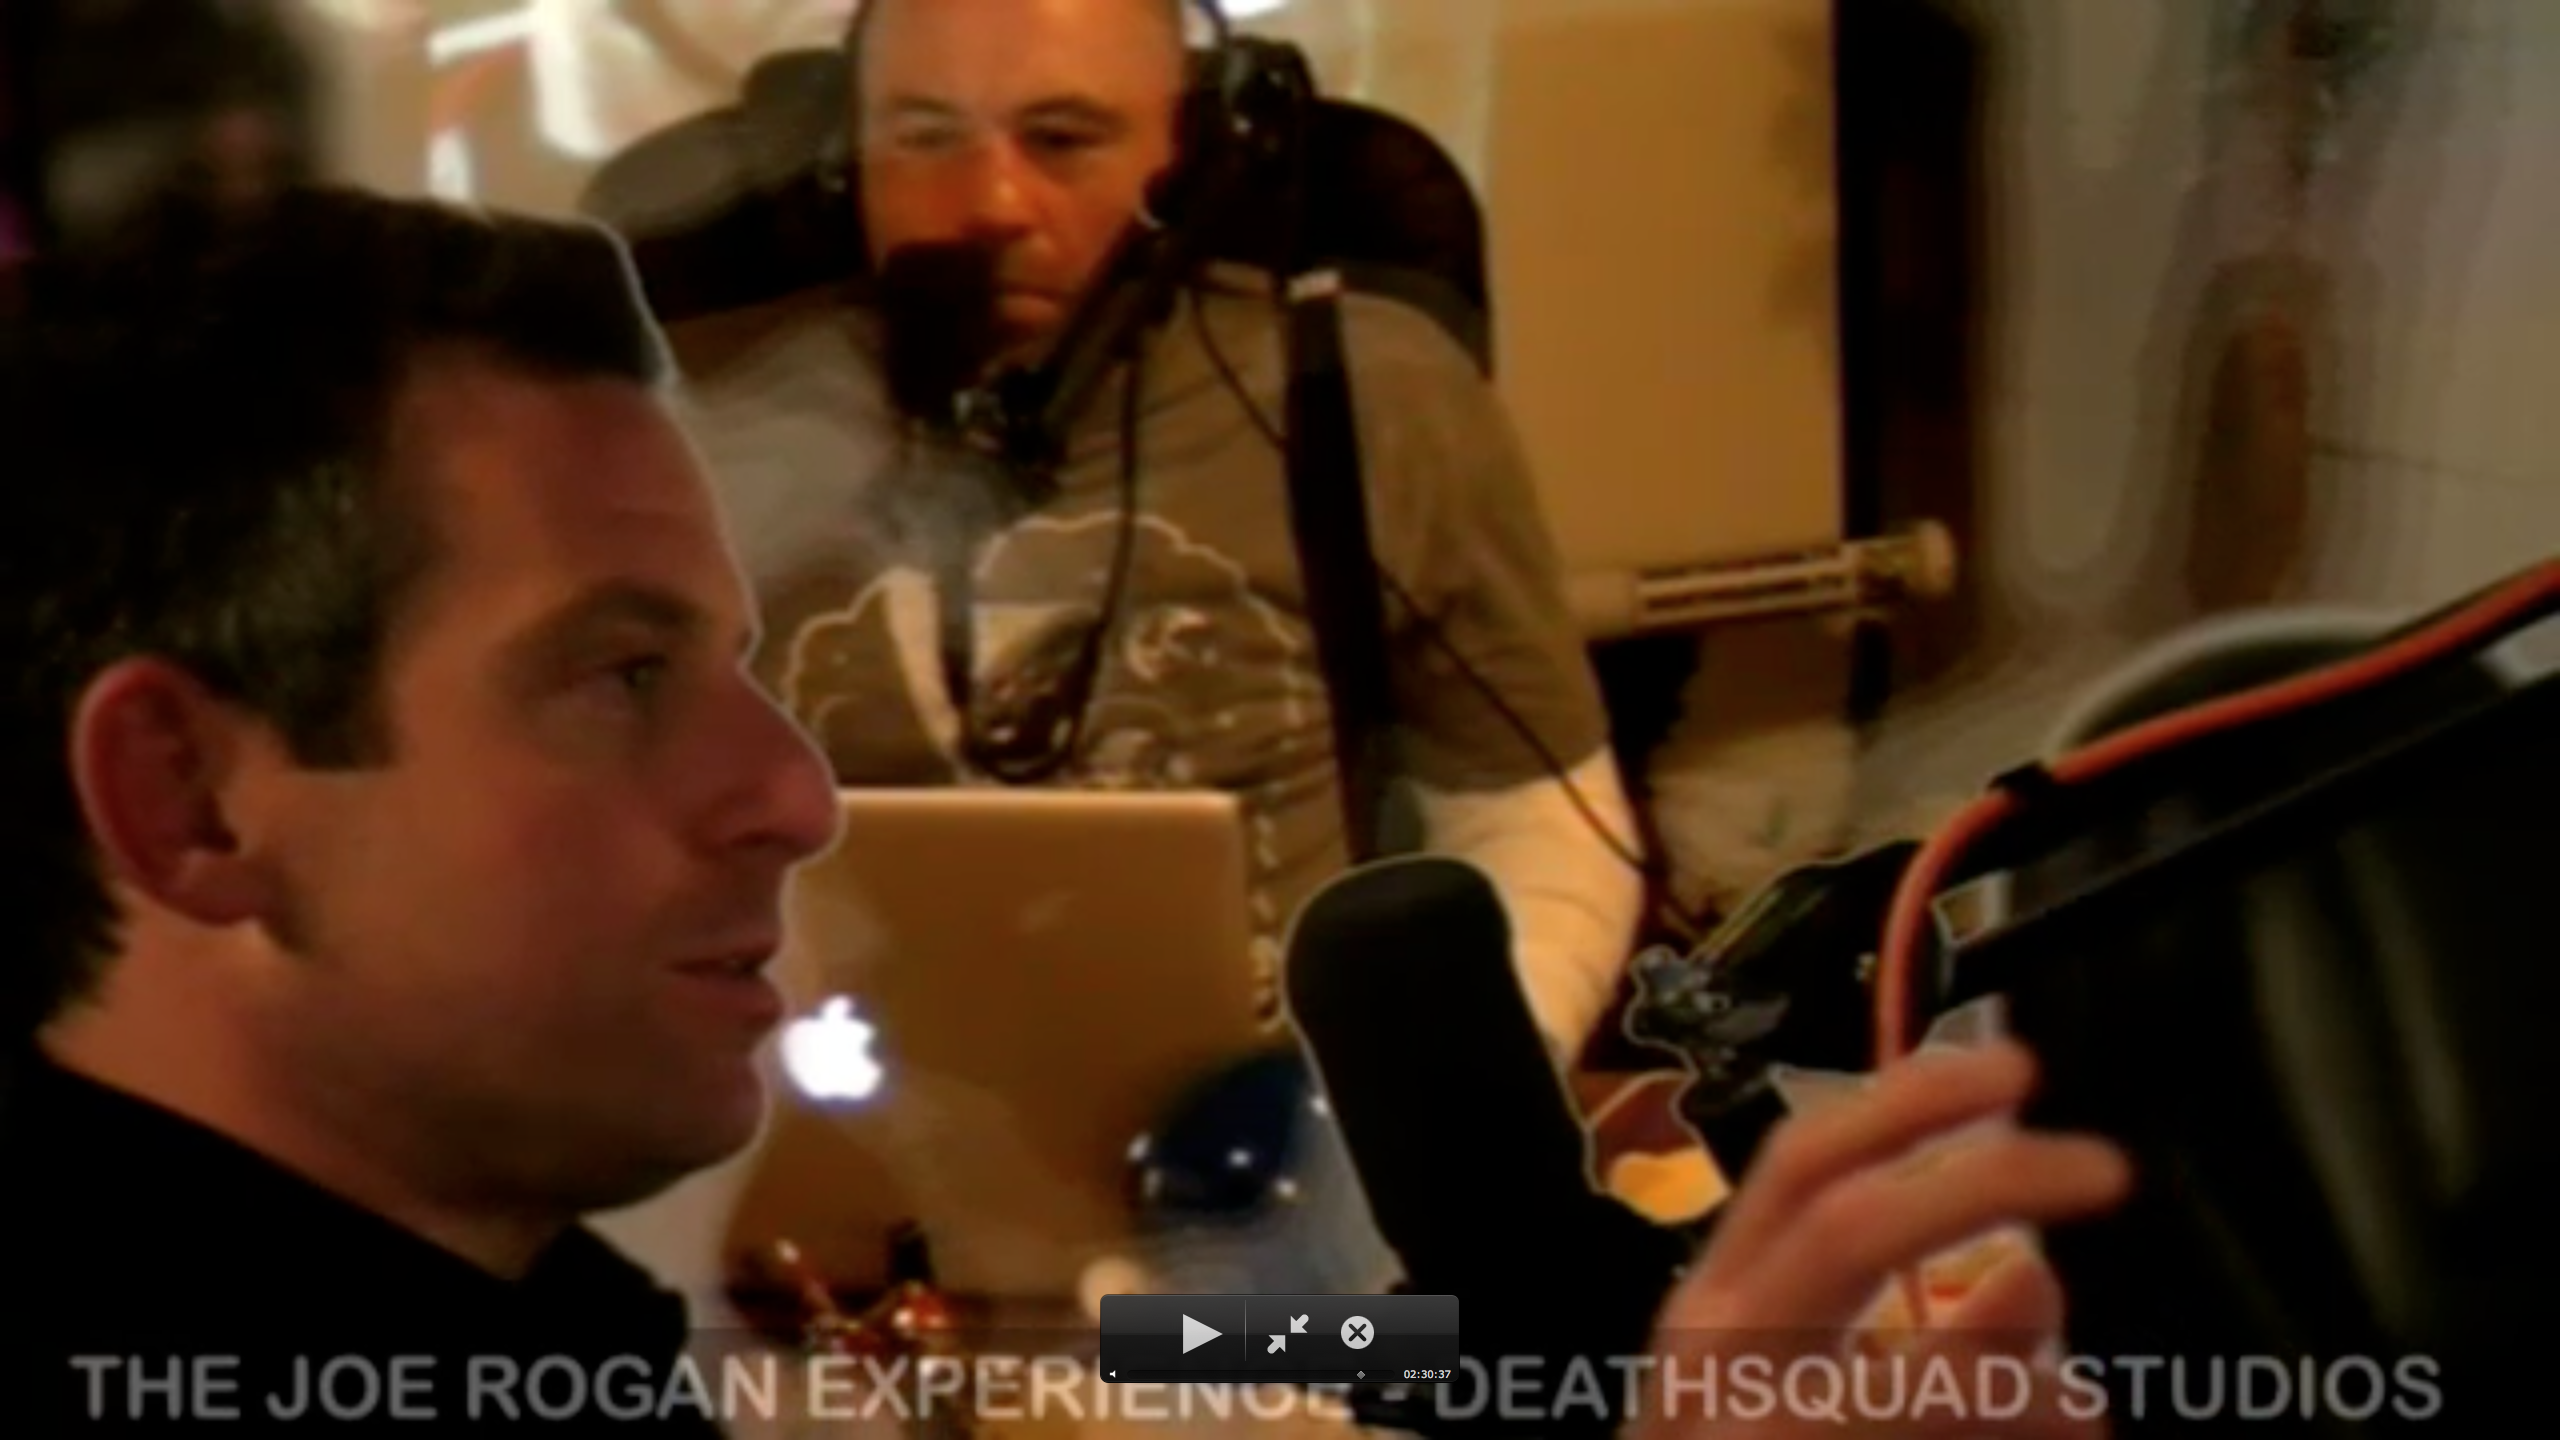 The Joe Rogan Experience #192 - Sam Harris, Brian Redban